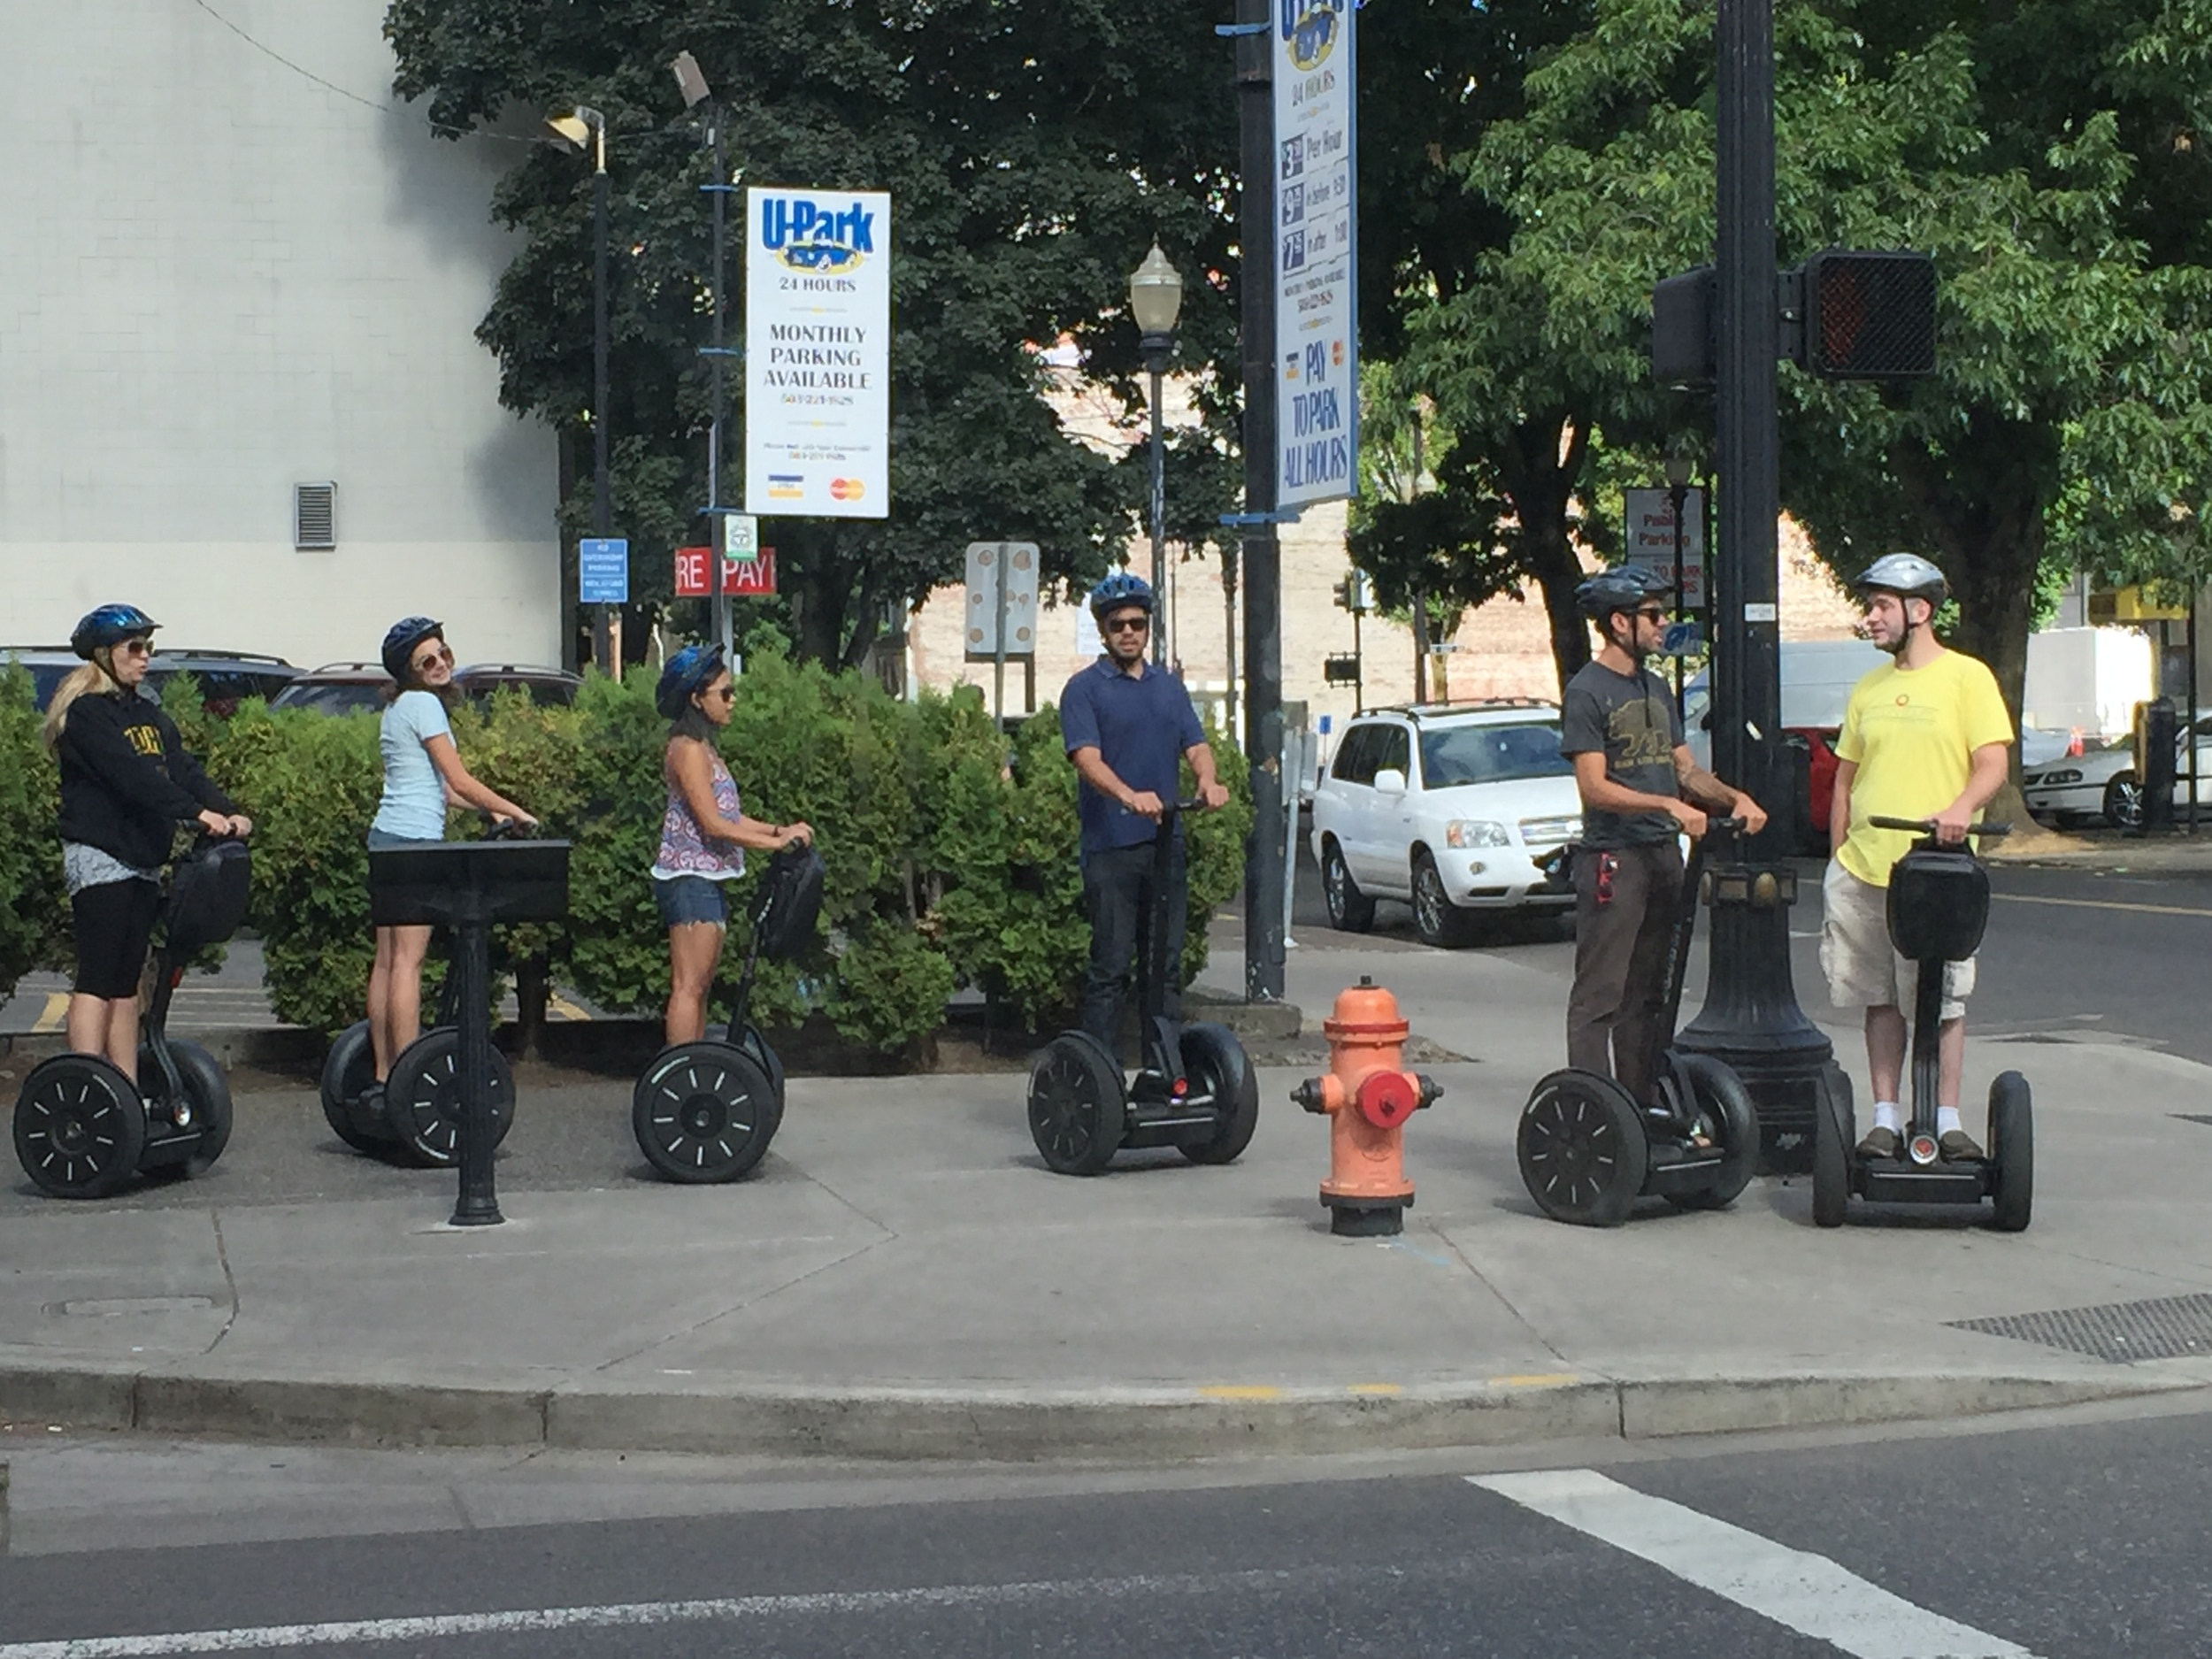 These lucky people are on a Segway tour of Portland.